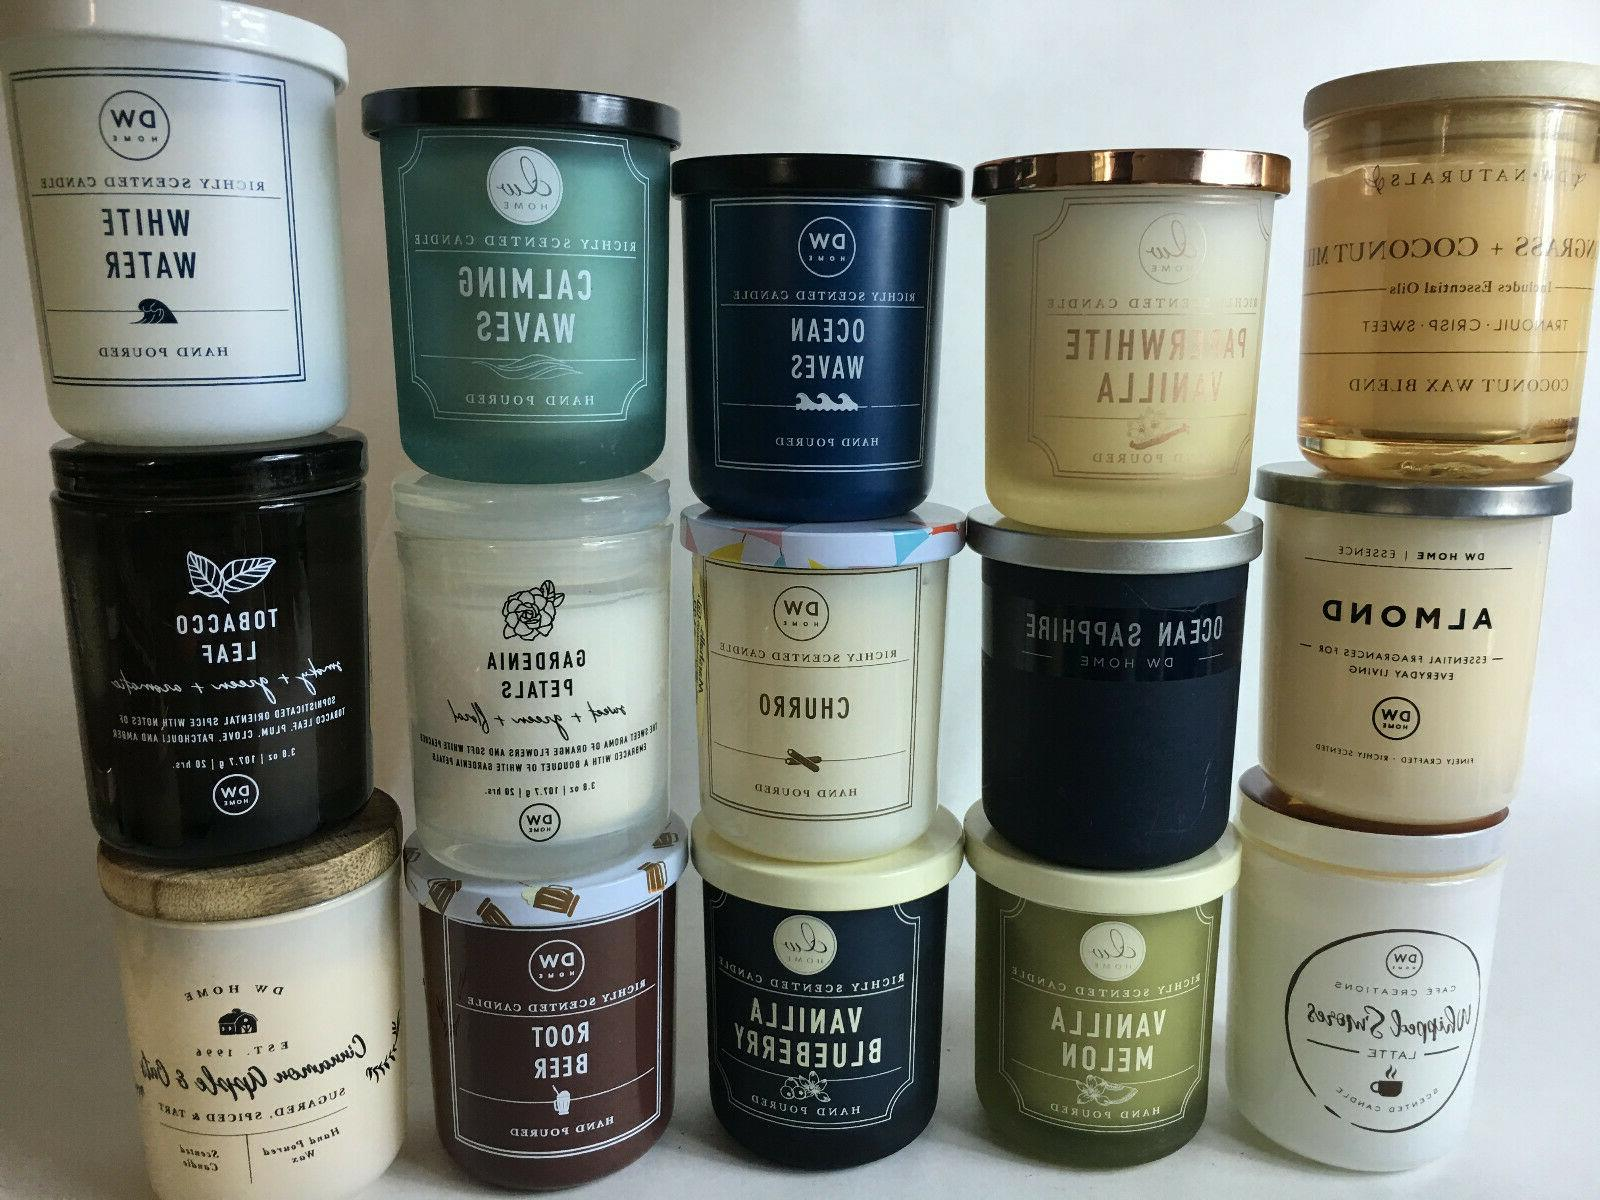 DW Candle 3.8 Mix Match! Added Candles shipping!